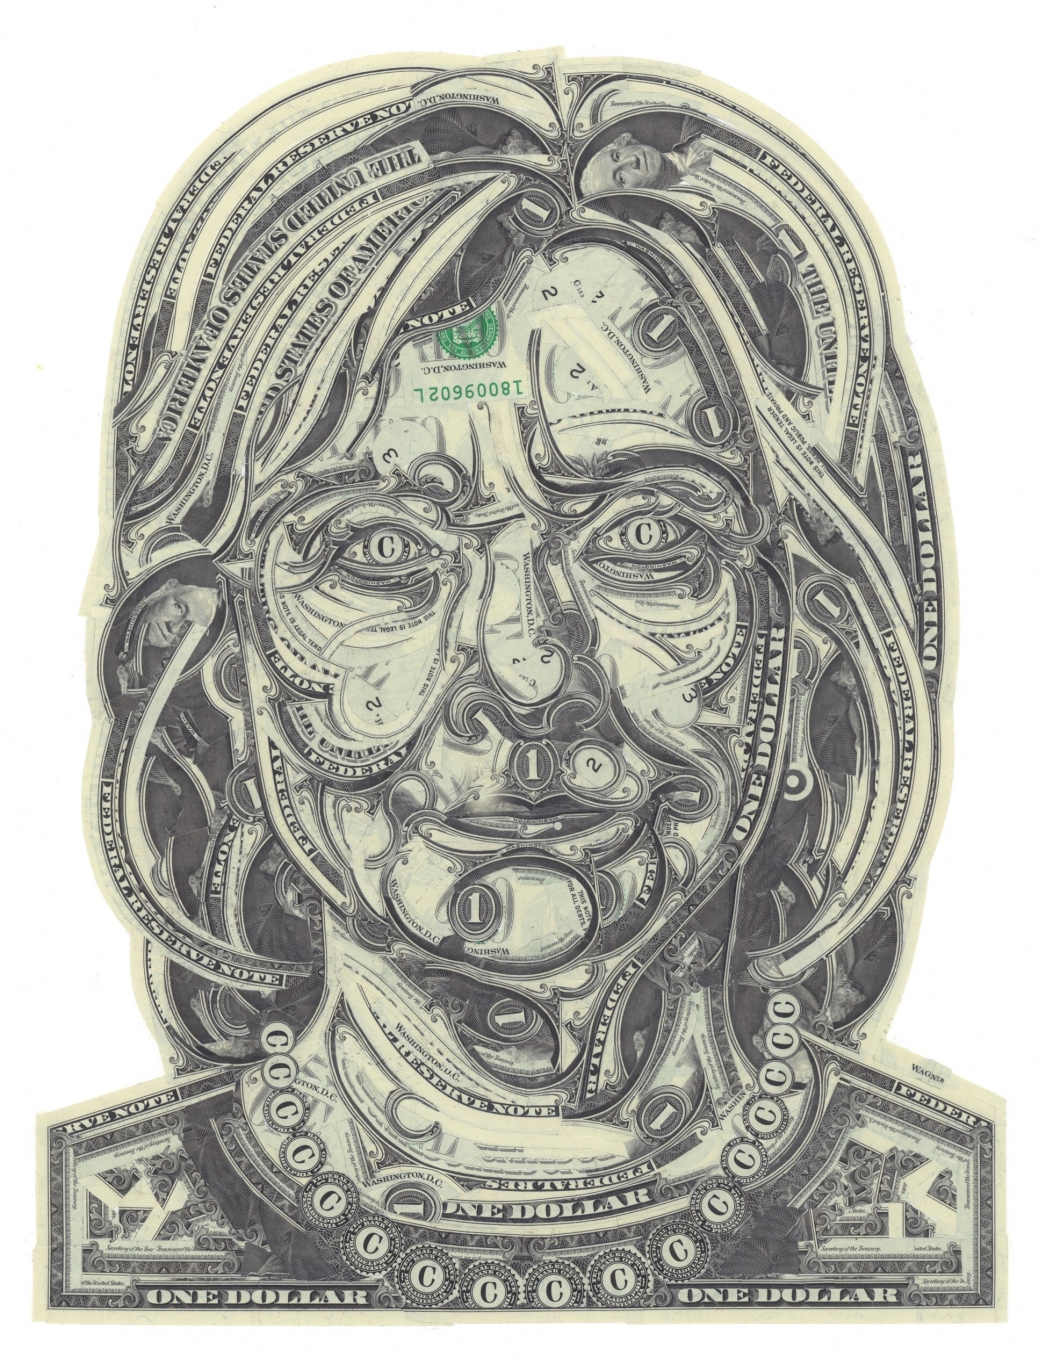 Meticulously Handcrafted Political Currency Collages by Mark Wagner